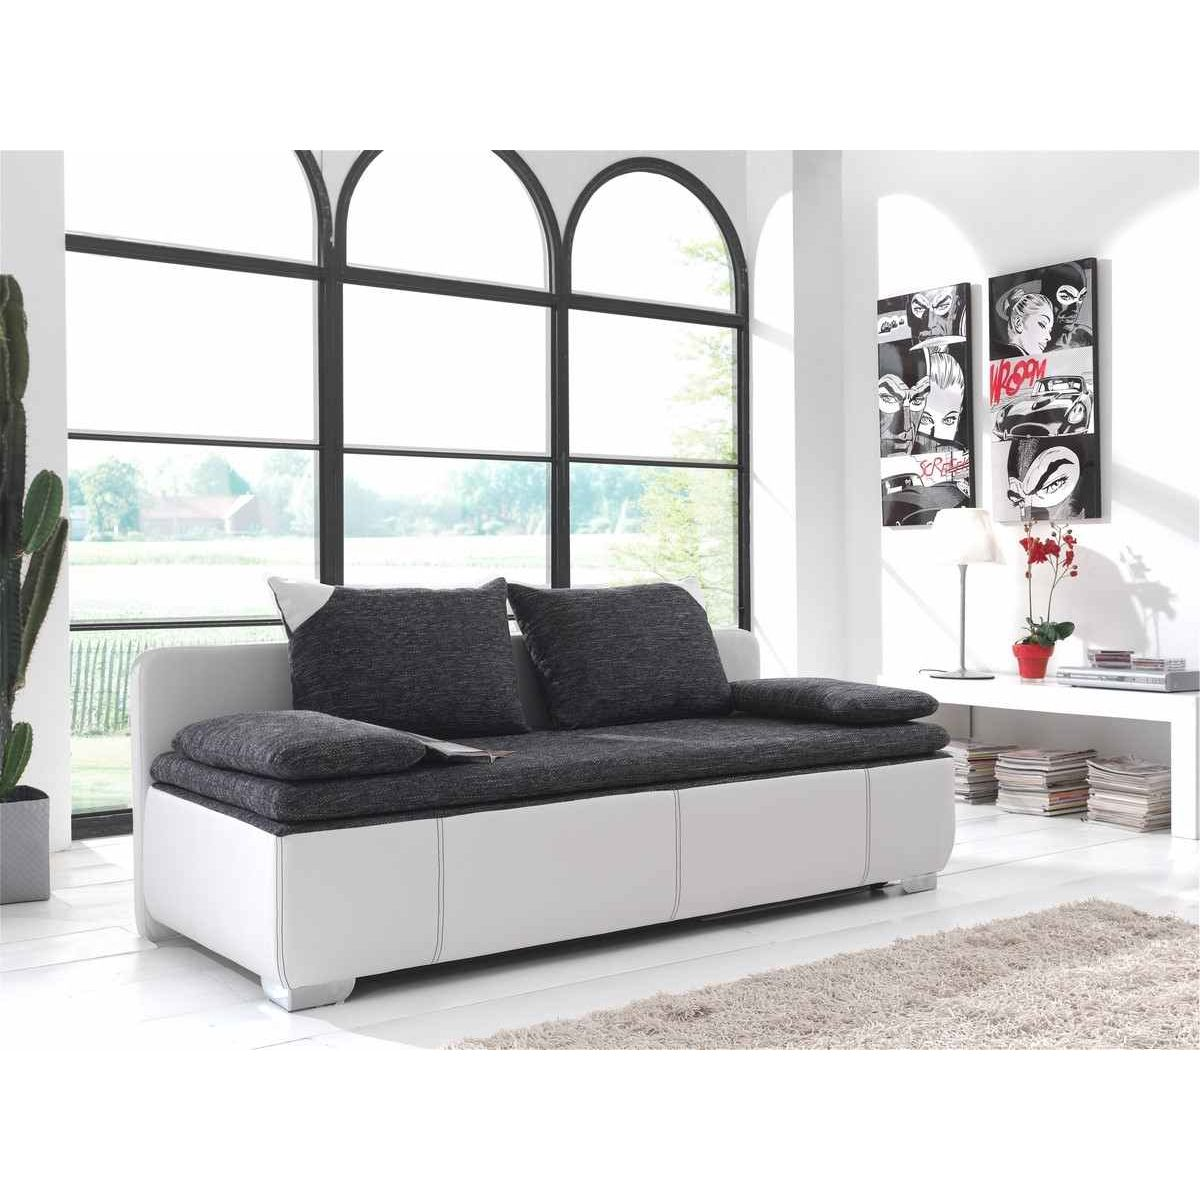 deco in paris 2 canape 3 places convertible noir et. Black Bedroom Furniture Sets. Home Design Ideas